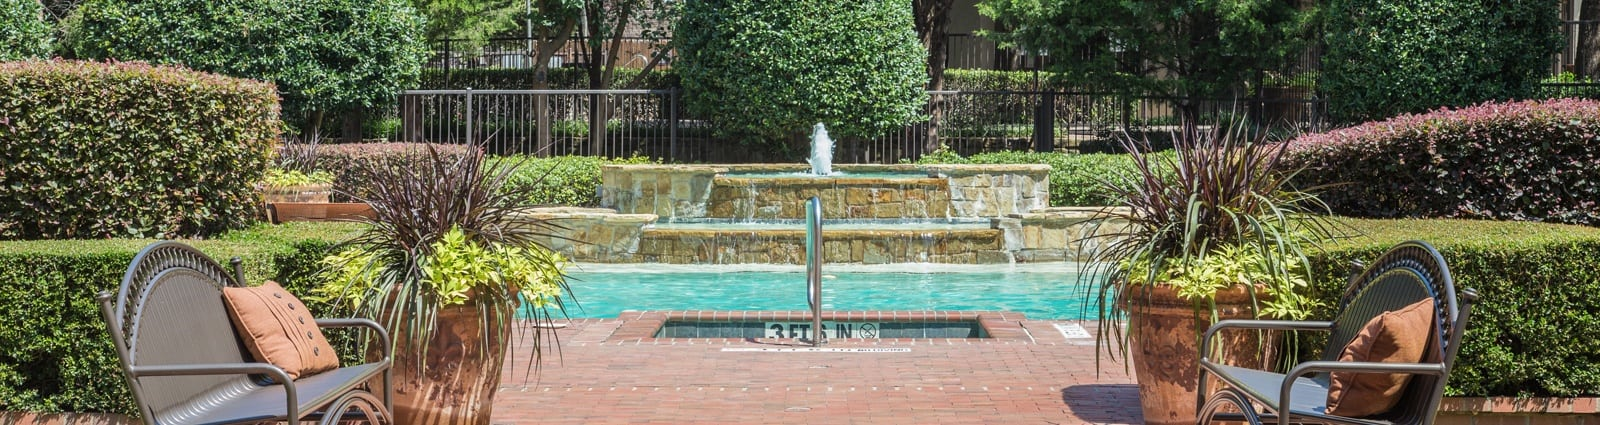 Apartments in Garland Texas